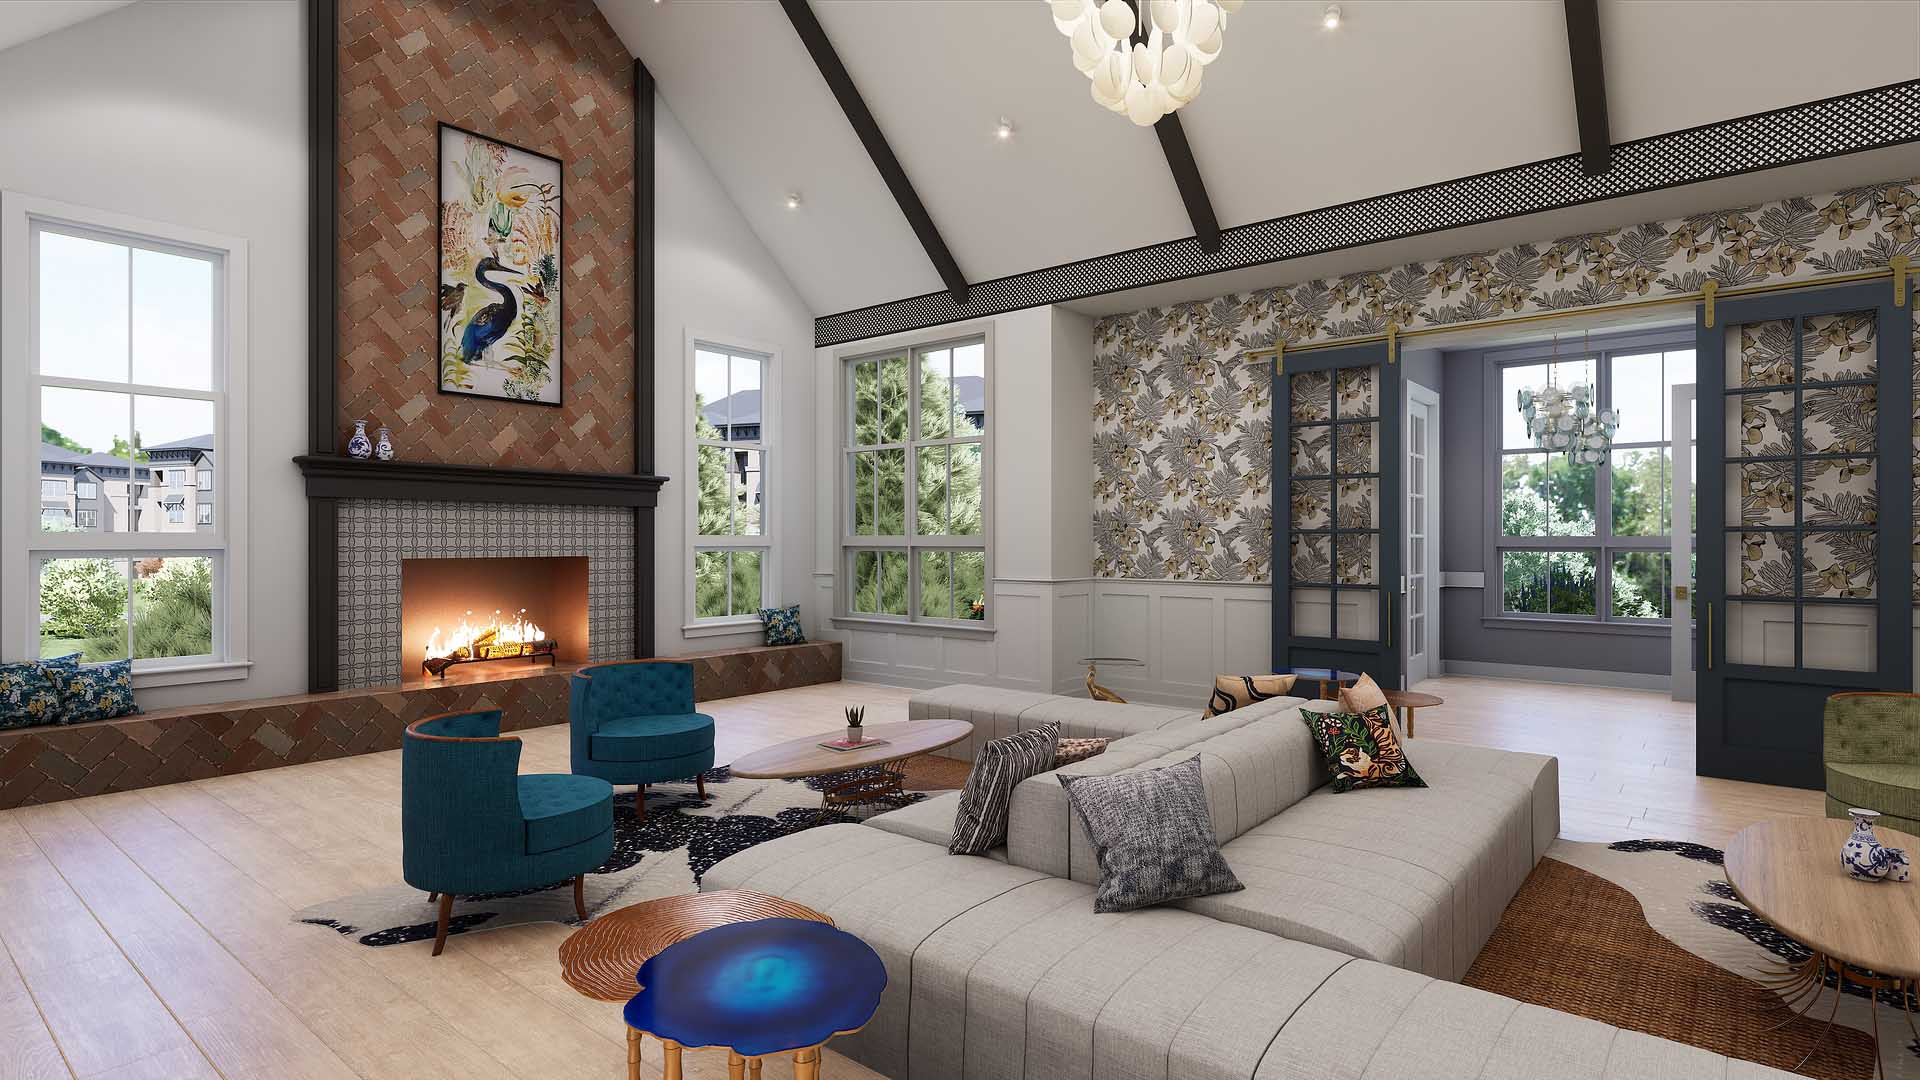 A rendering of an apartment clubroom fireplace